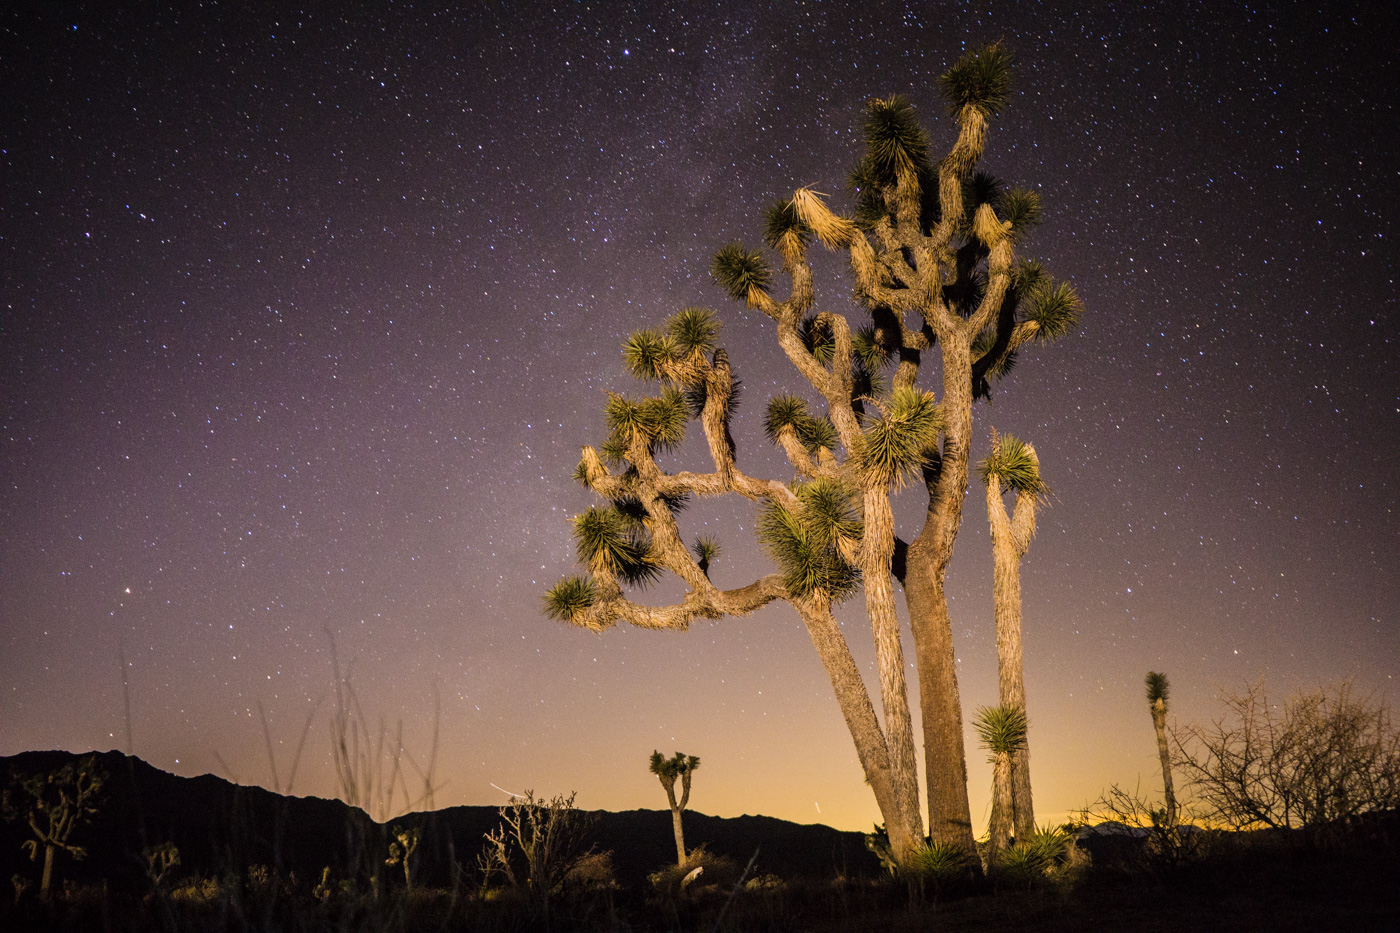 Sony a6000, Joshua Tree National Park, 20s, f/2.8, ISO 3200